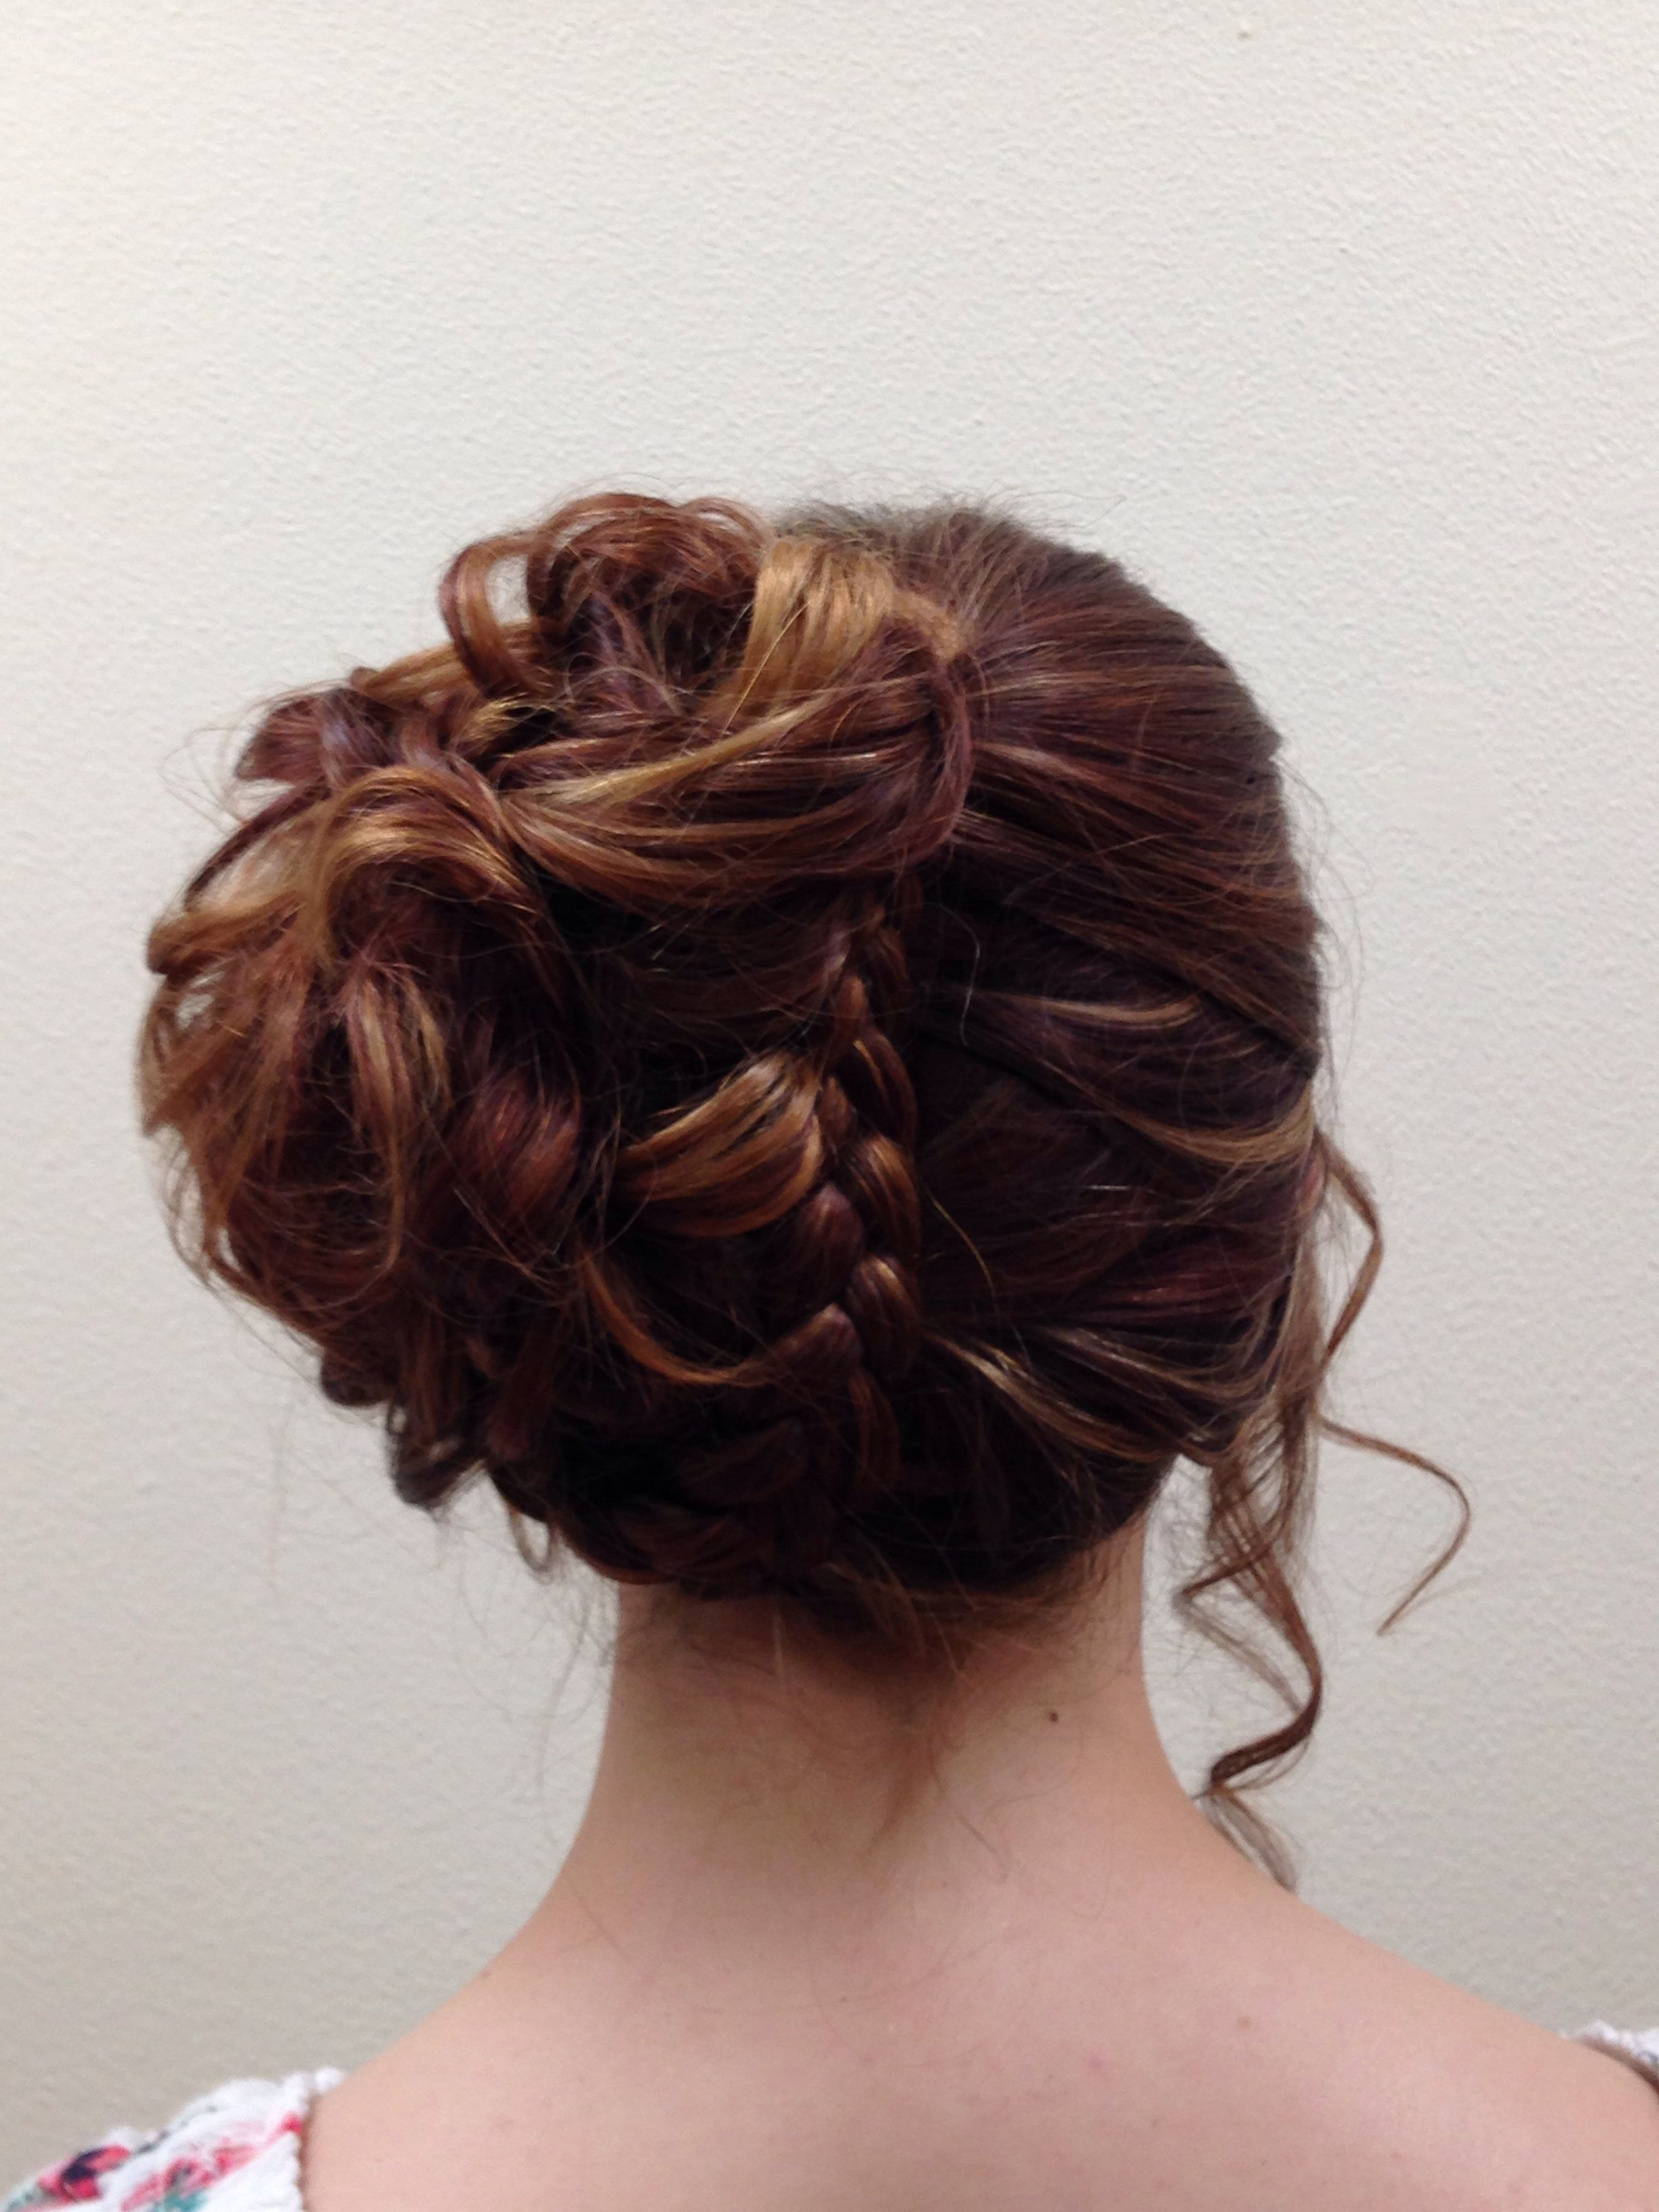 This was my hair for my th grade graduation it was perfectly